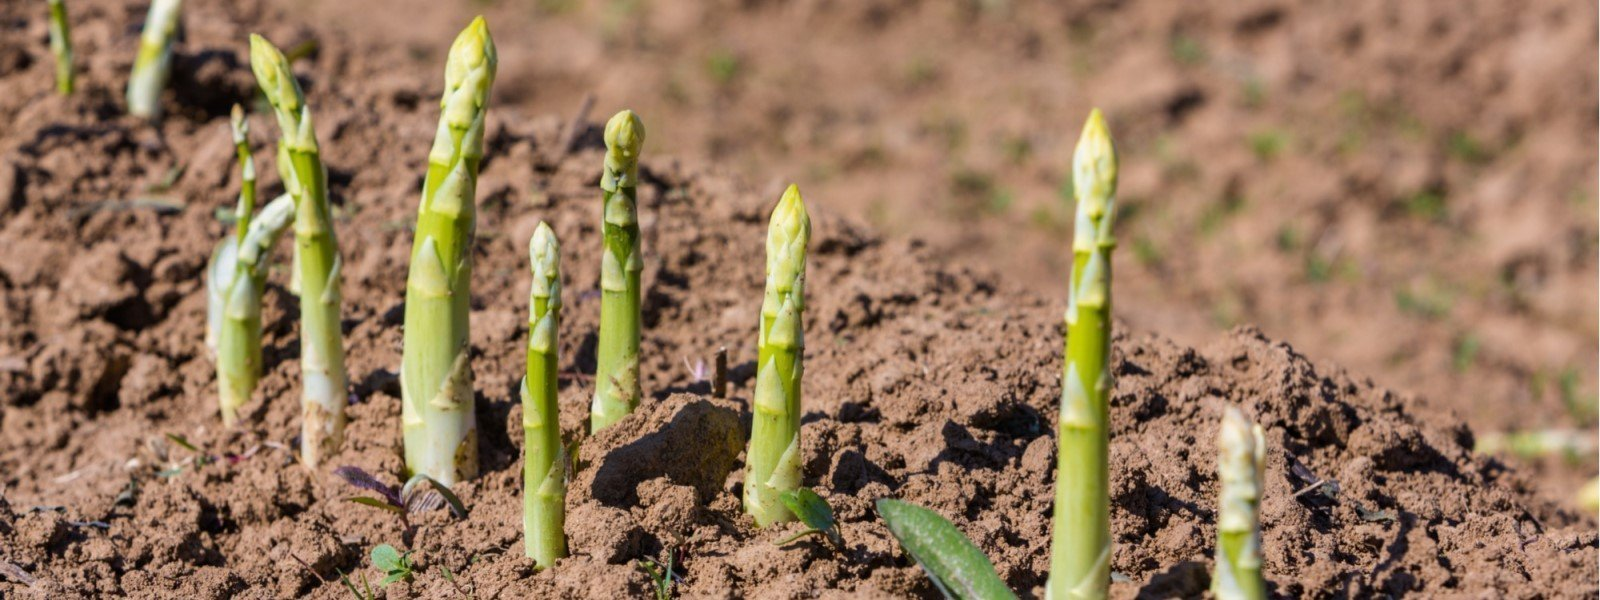 British Asparagus Growing in Field